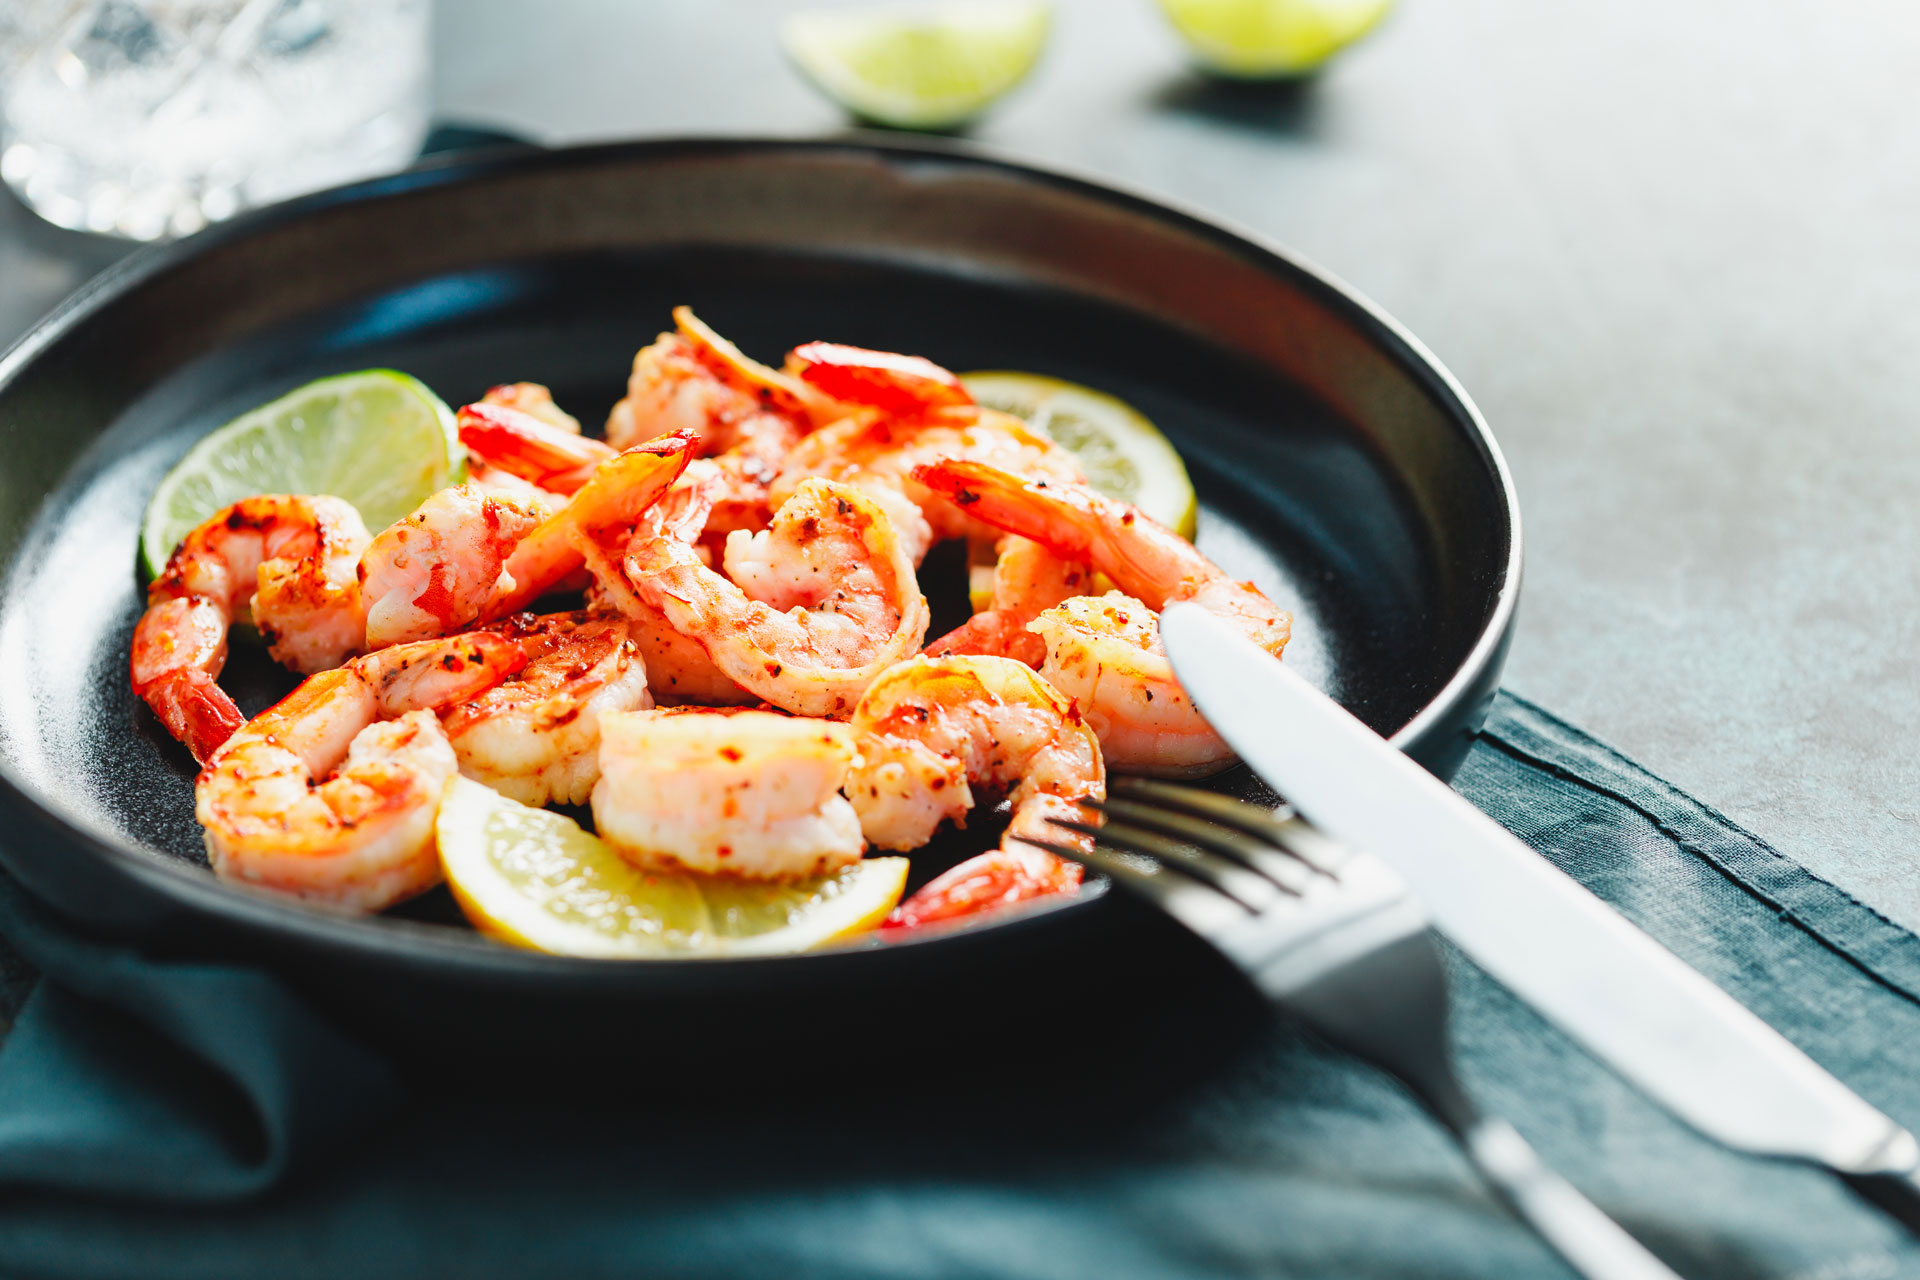 fried-tiger-shrimp-with-lime-lemon-and-spices-on-a-A5RCTAK.jpg